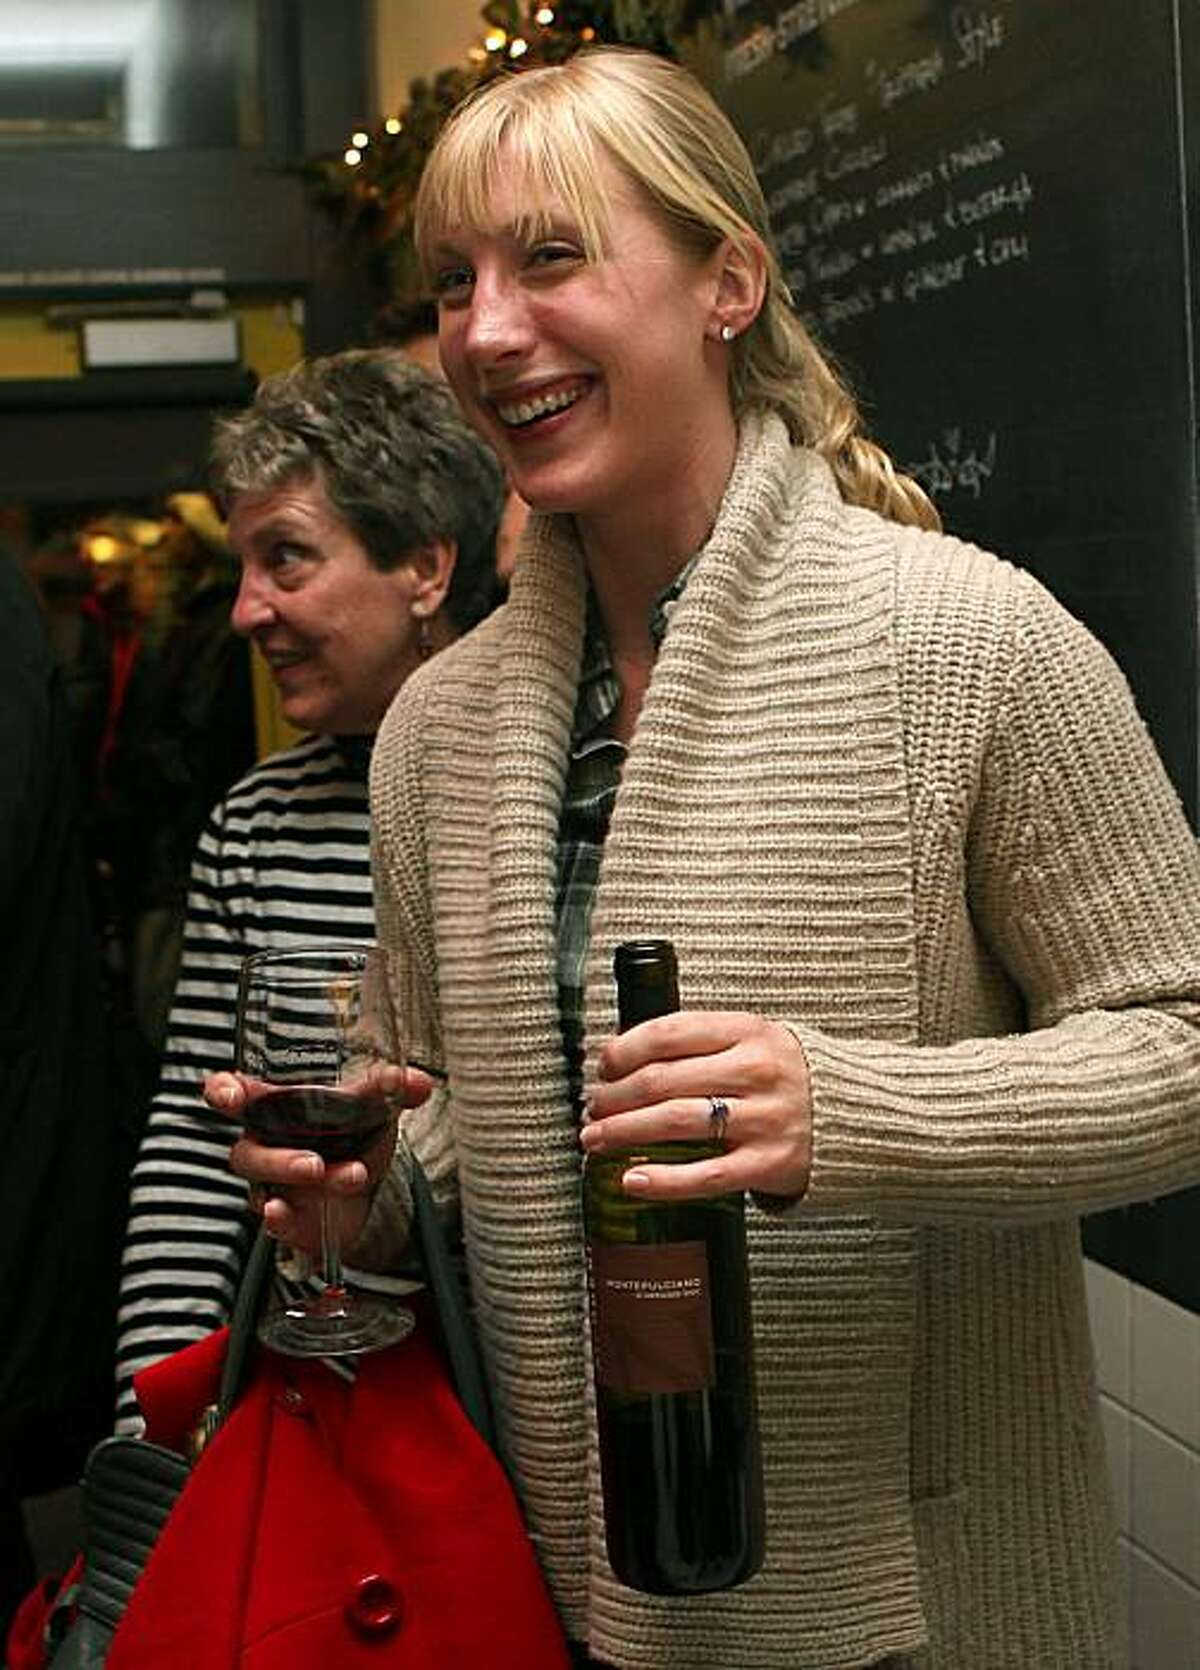 Kristen Rajagapal having a bottle of wine with her visiting mom Rome Brumfield from Pebble Beach as they wait in line at Delfina's Pizzeria in San Francisco, Calif., on Thursday, December 30, 2010.